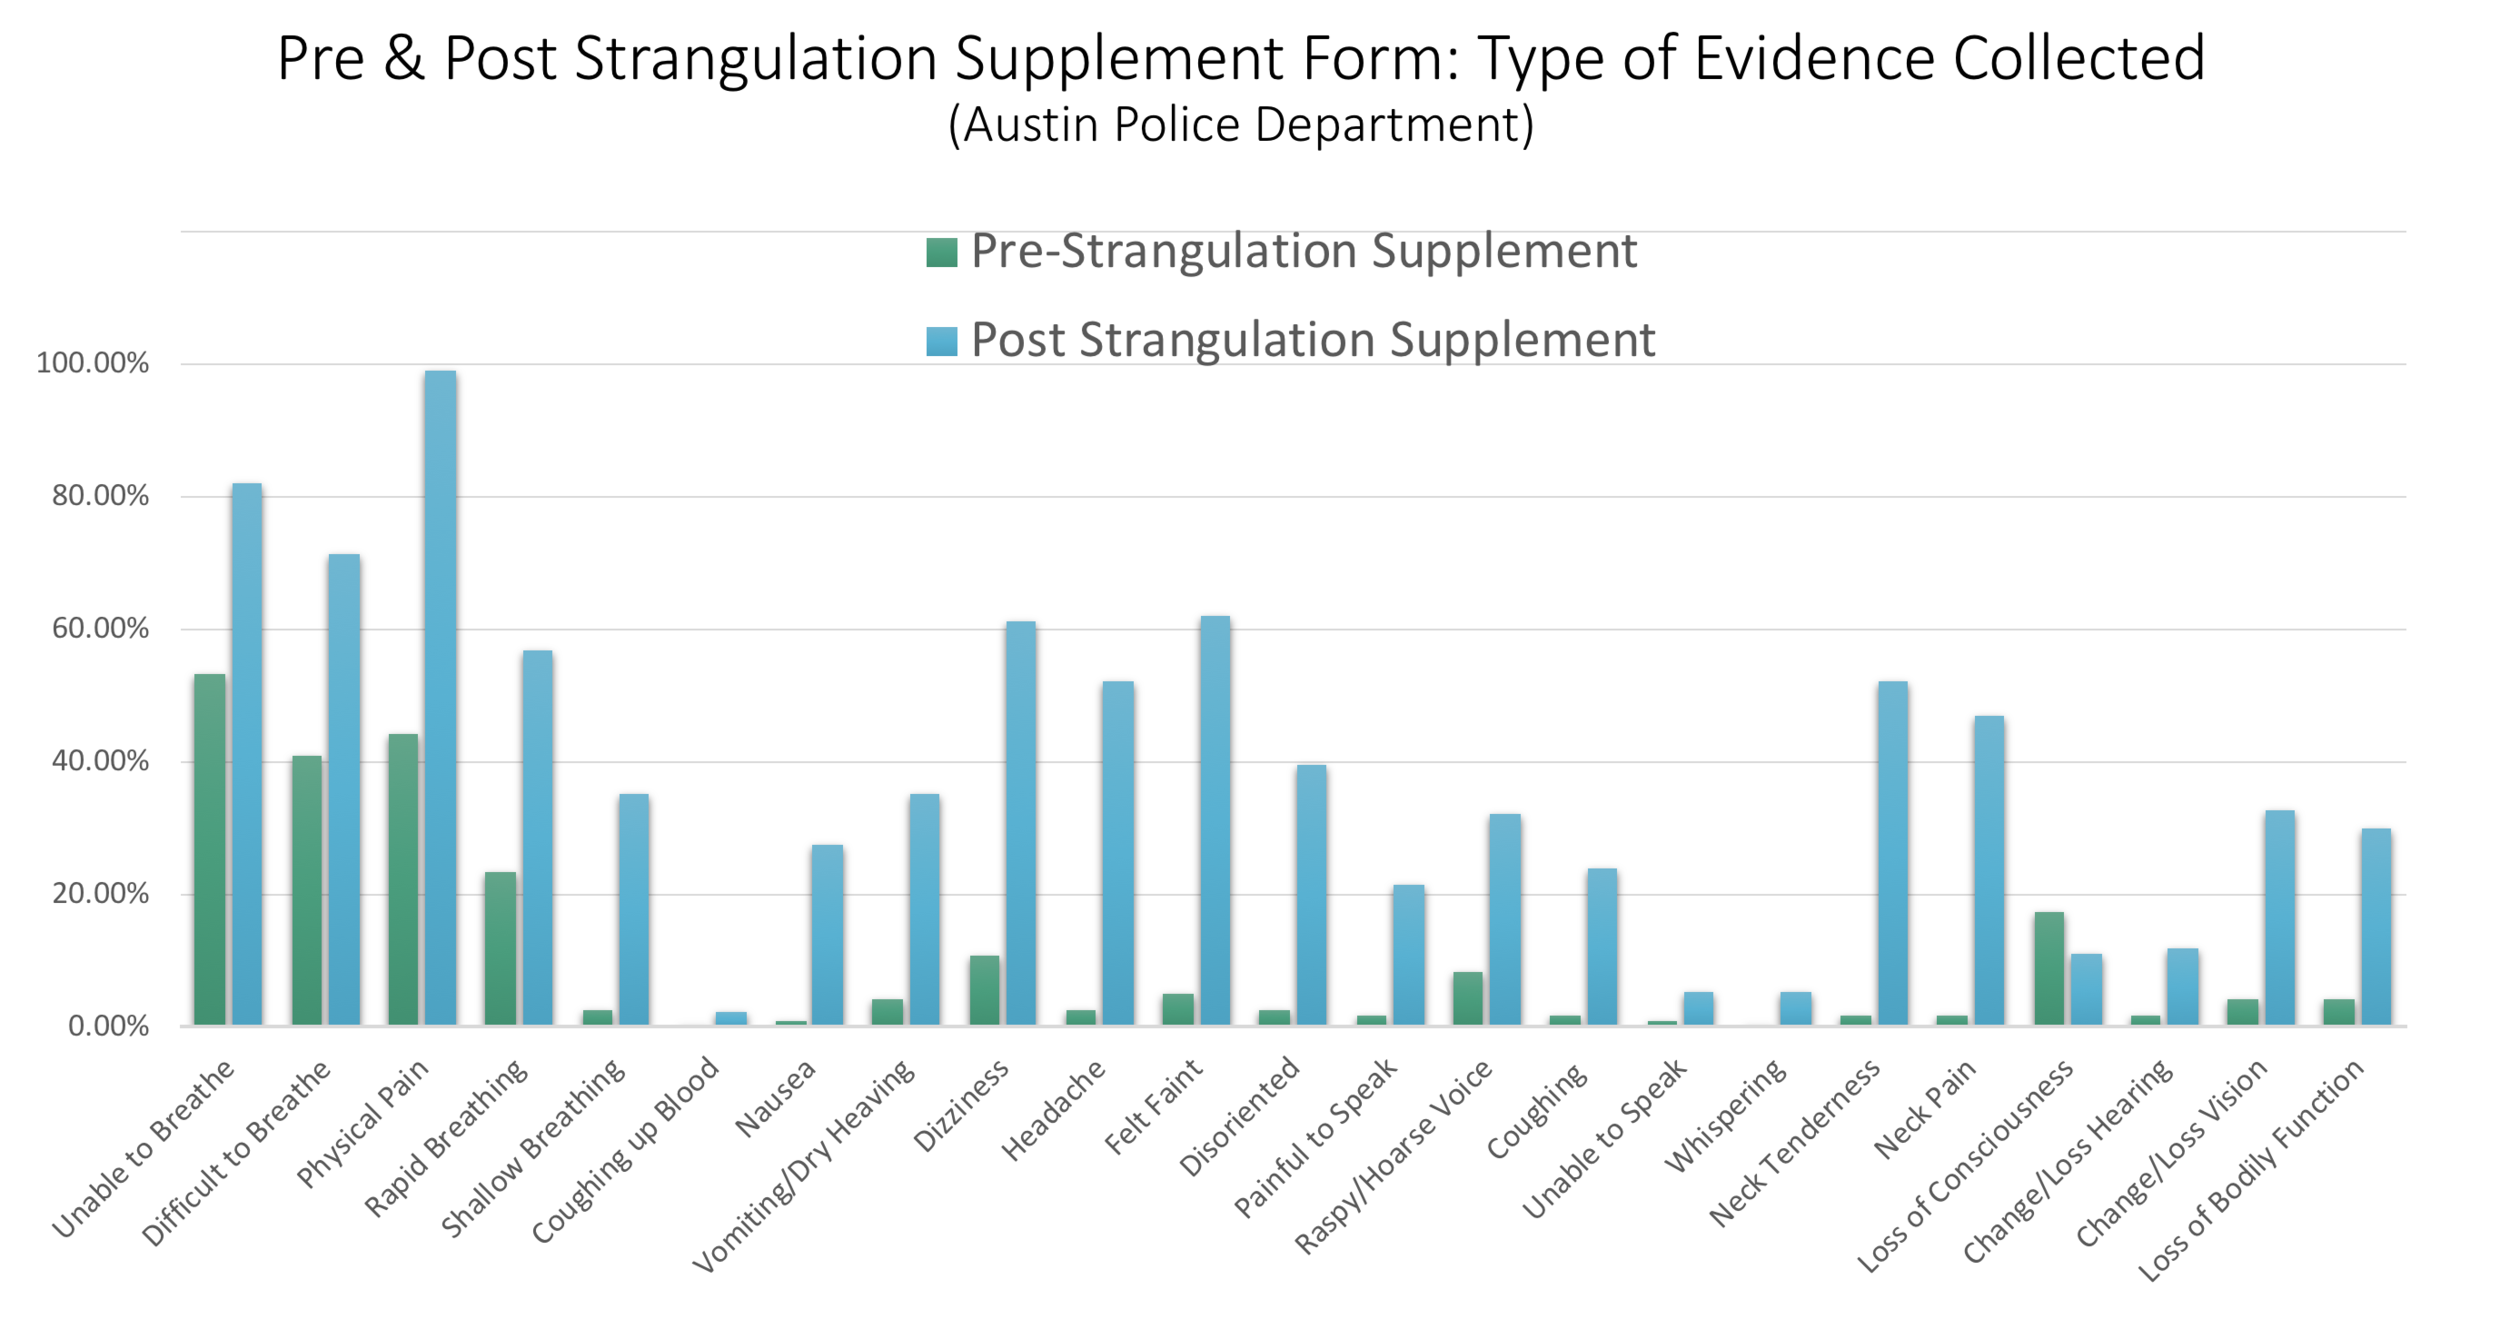 The use of the strangulation supplement by a patrol officer significantly increases the quality and quantity of evidence collected in an investigation.;